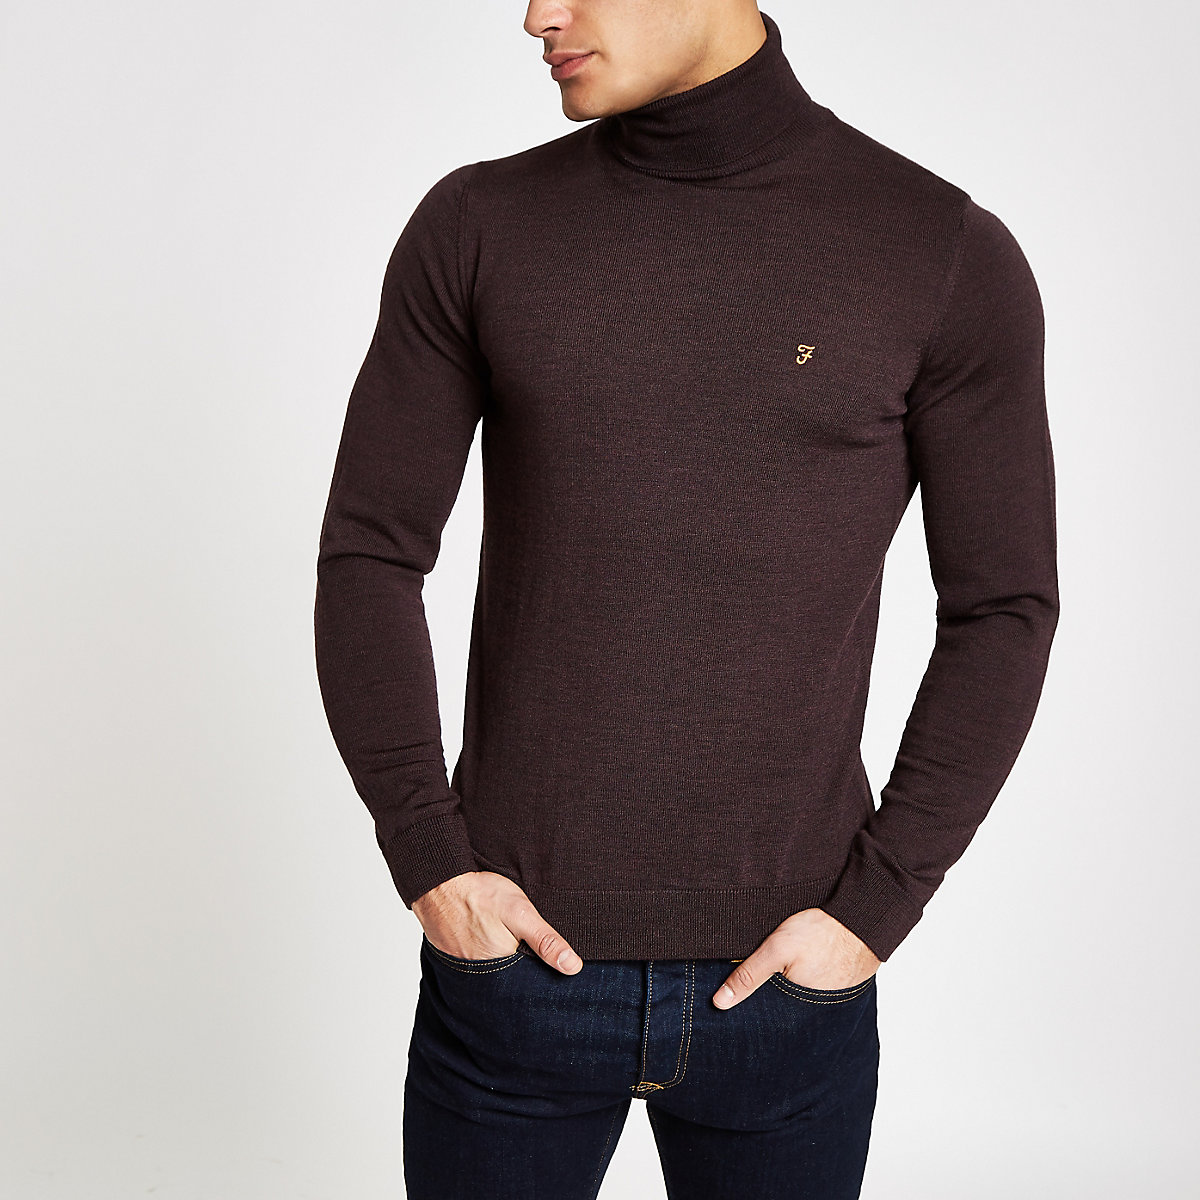 Farah dark red roll neck sweater